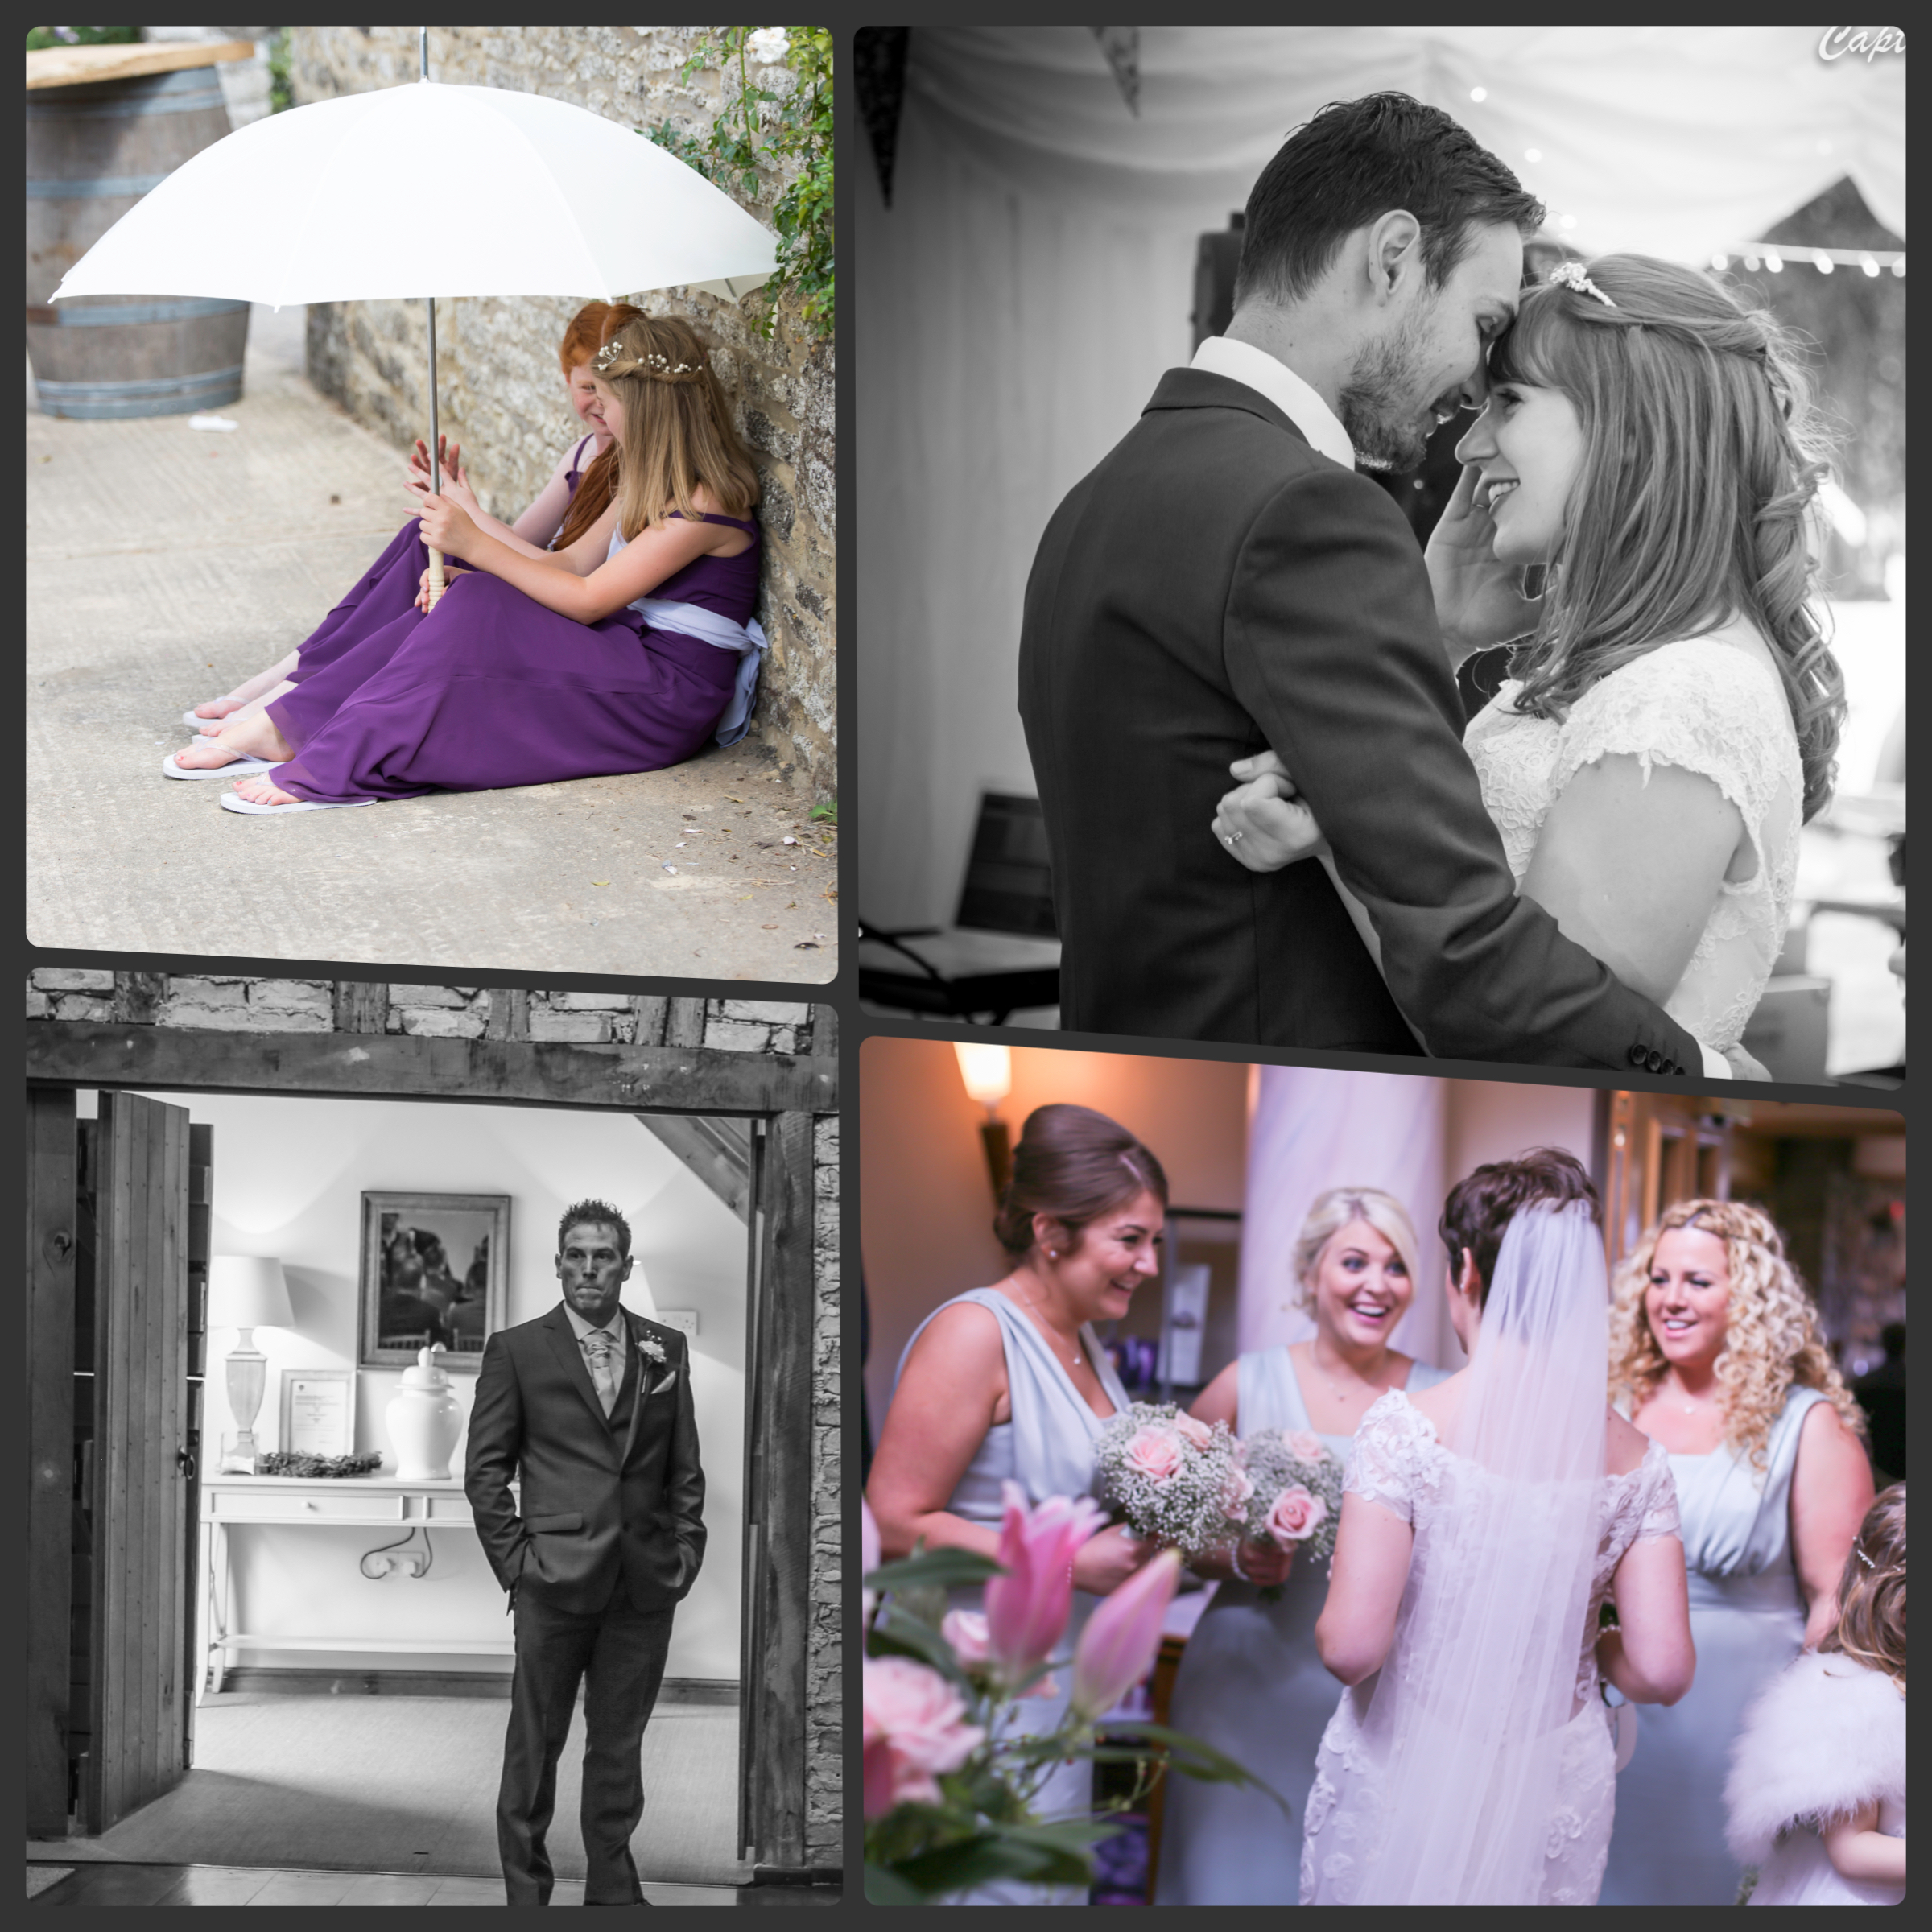 Examples of Nia & James The Photographers Reportage style photography